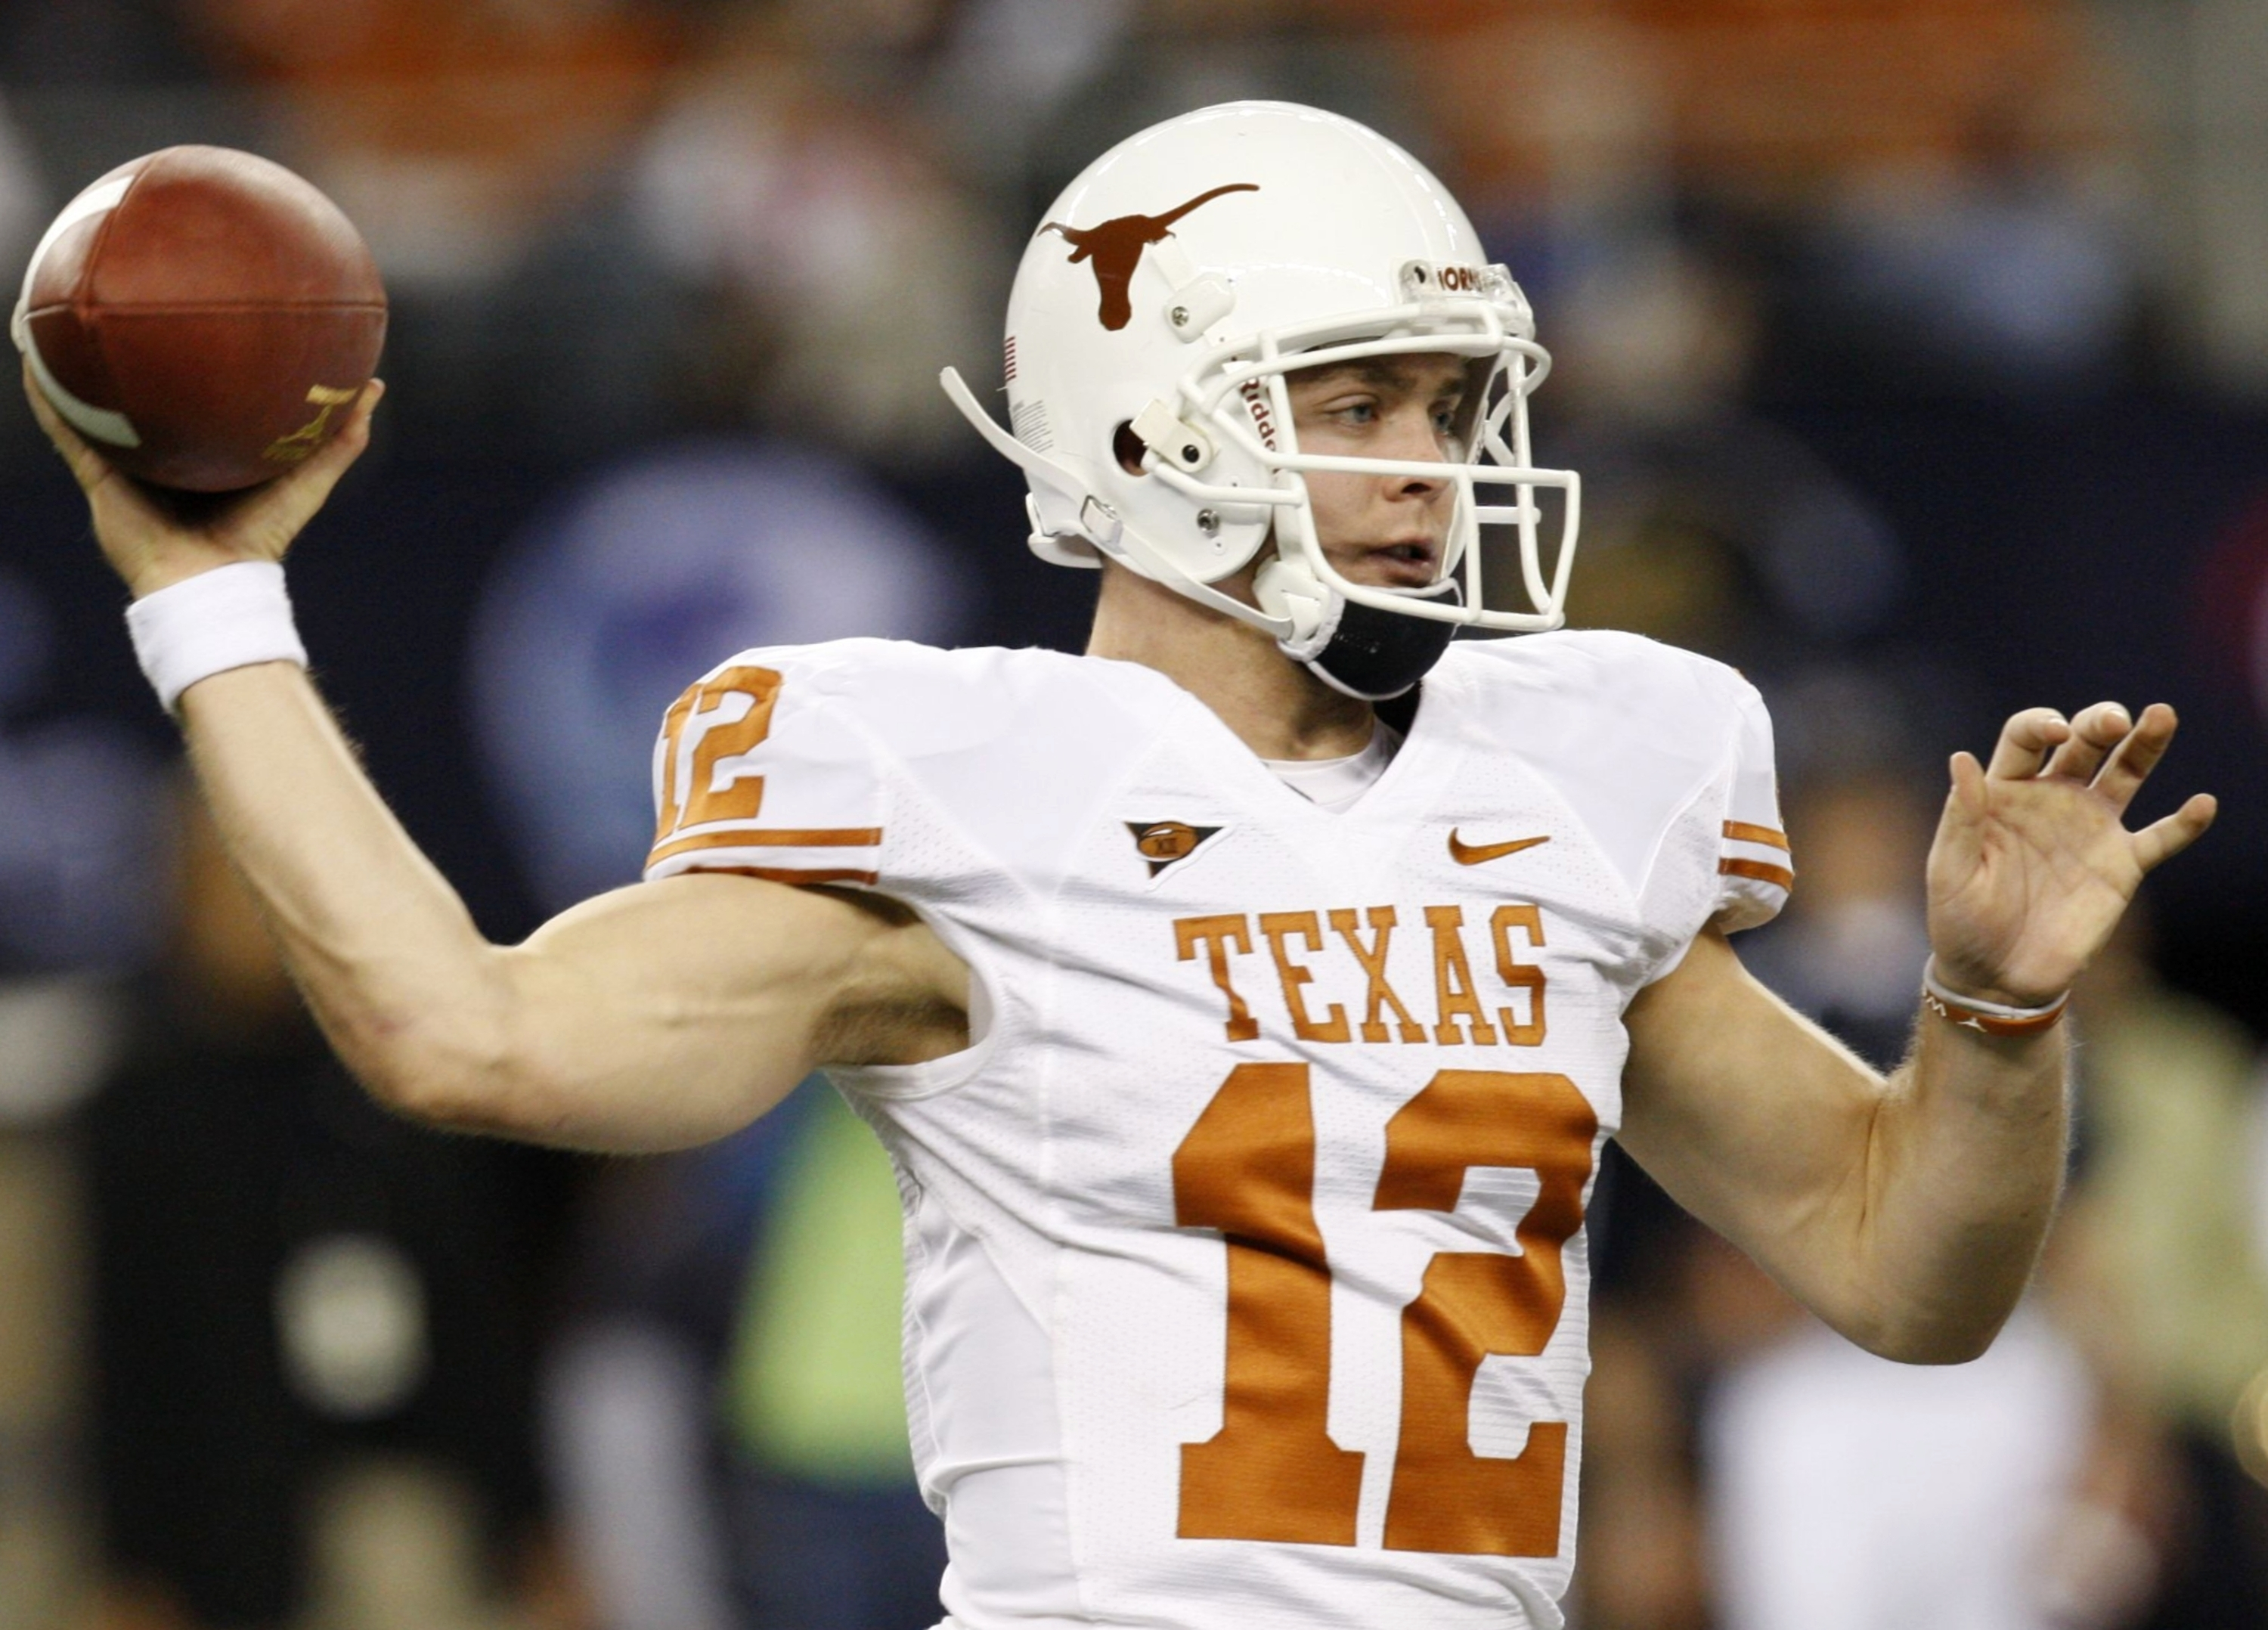 ARLINGTON, TX - DECEMBER 5:  Quarterback Colt McCoy #12 of the Texas Longhorns passes the ball against the Nebraska Cornhuskers at Cowboys Stadium on December 5, 2009 in Arlington, Texas.  (Photo by Ronald Martinez/Getty Images)